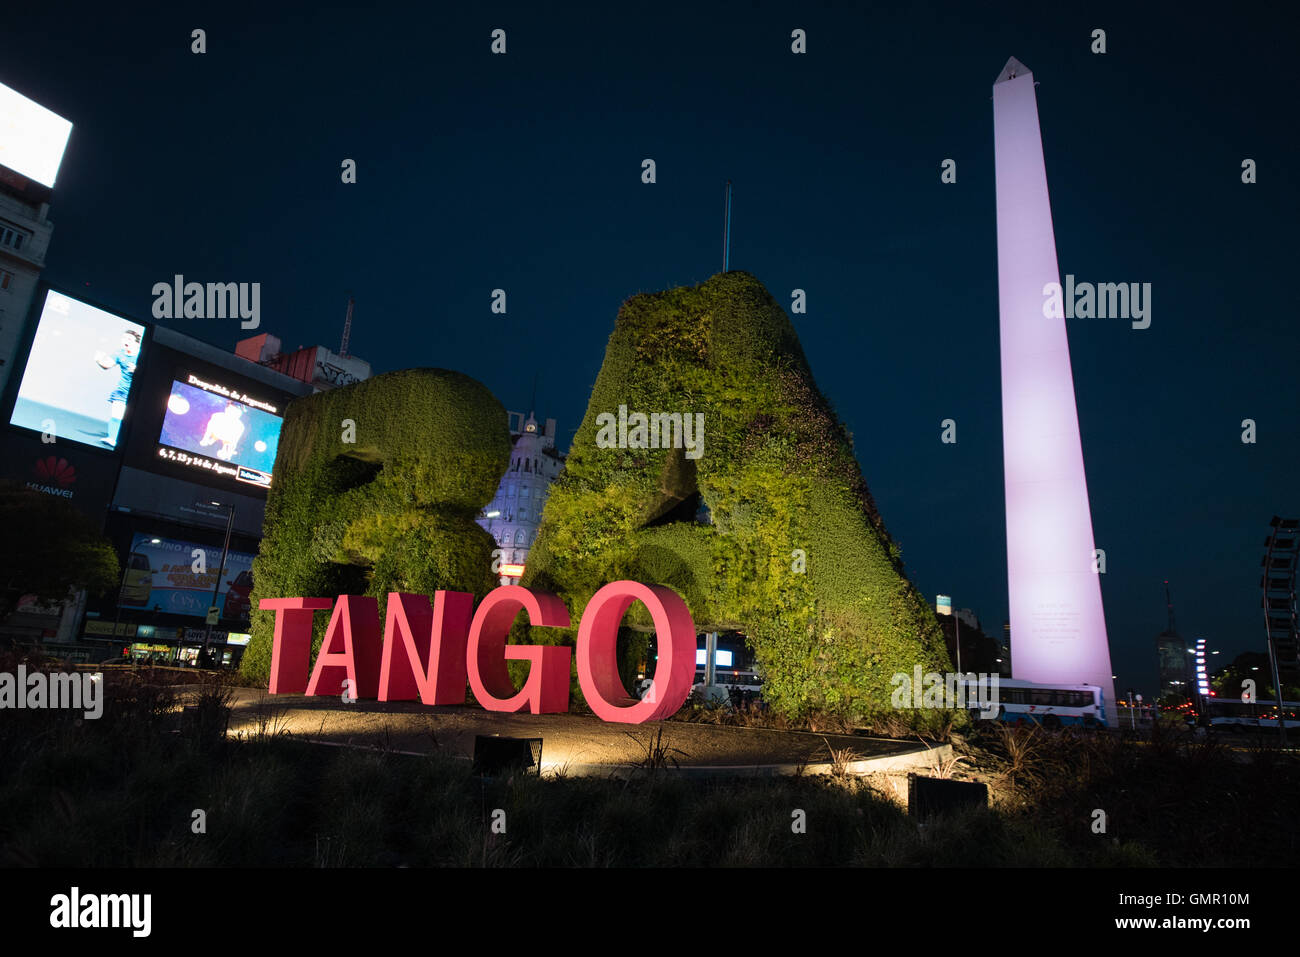 Buenos Aires, Argentina - 15 Aug 2016: Tango installation in front of the Obelisk. - Stock Image